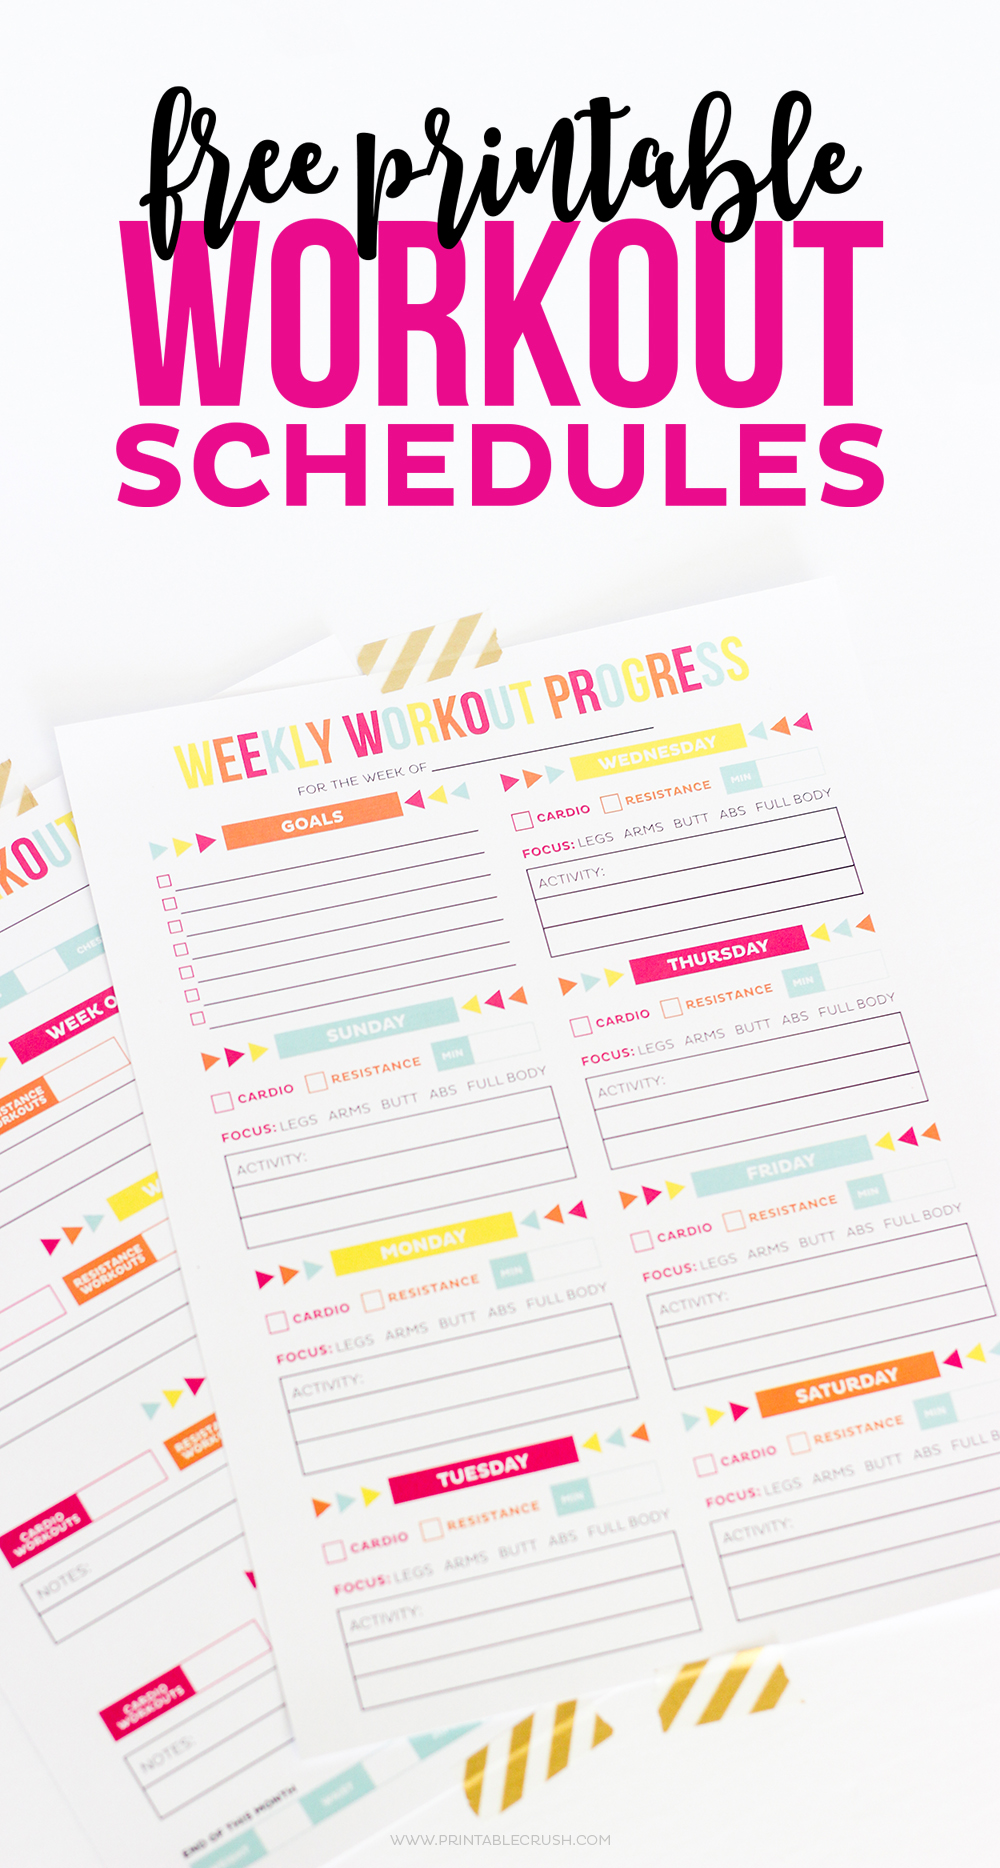 Workout calendar with goals section